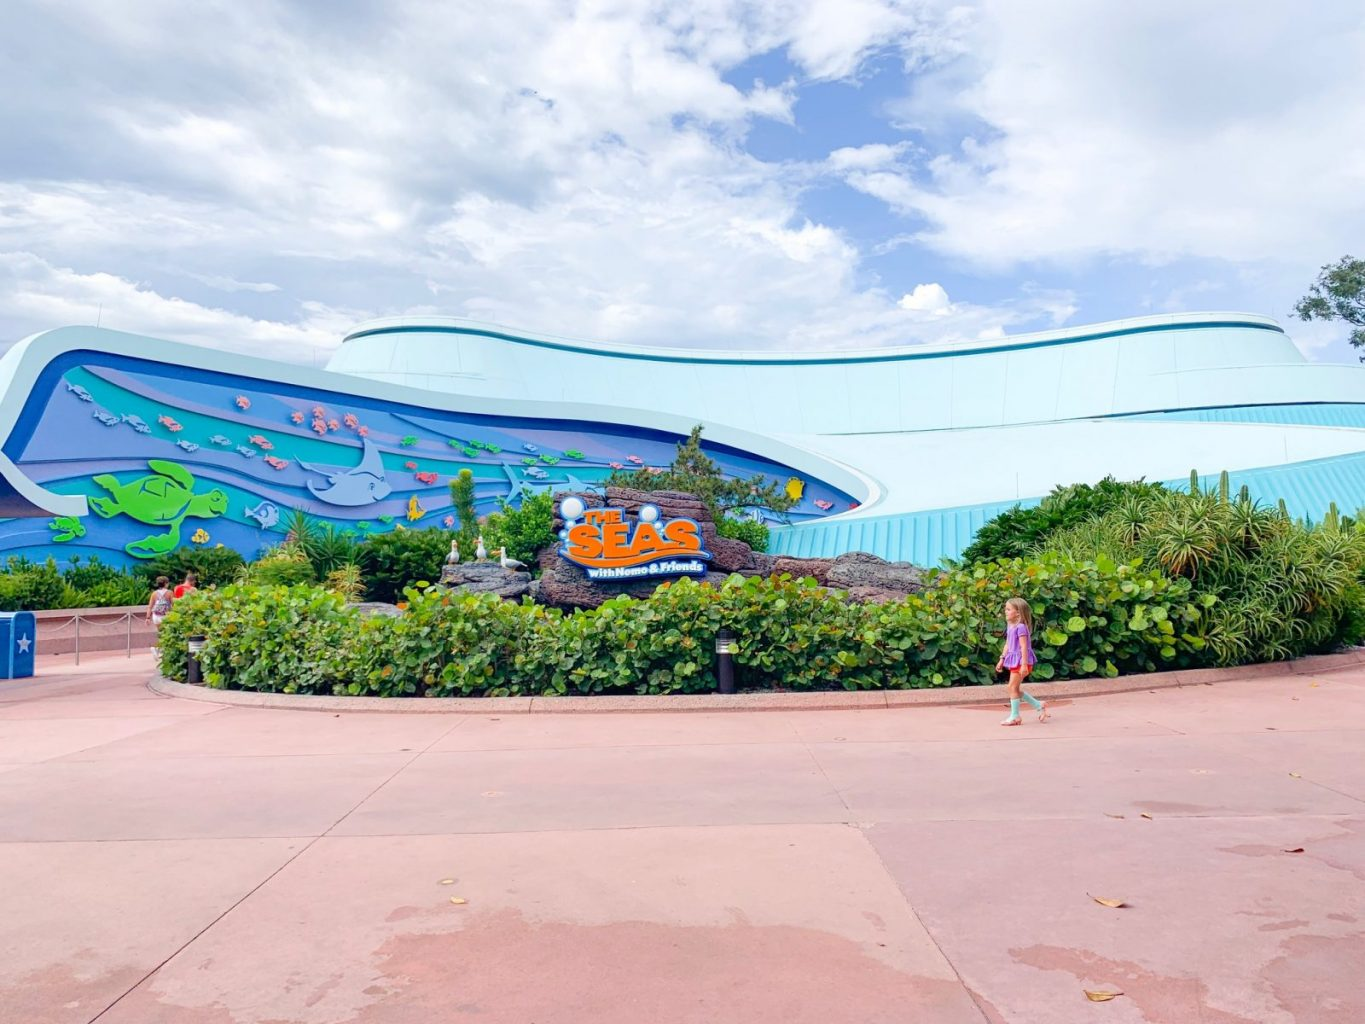 Seas With Nemo is one of the worst rides at Disney